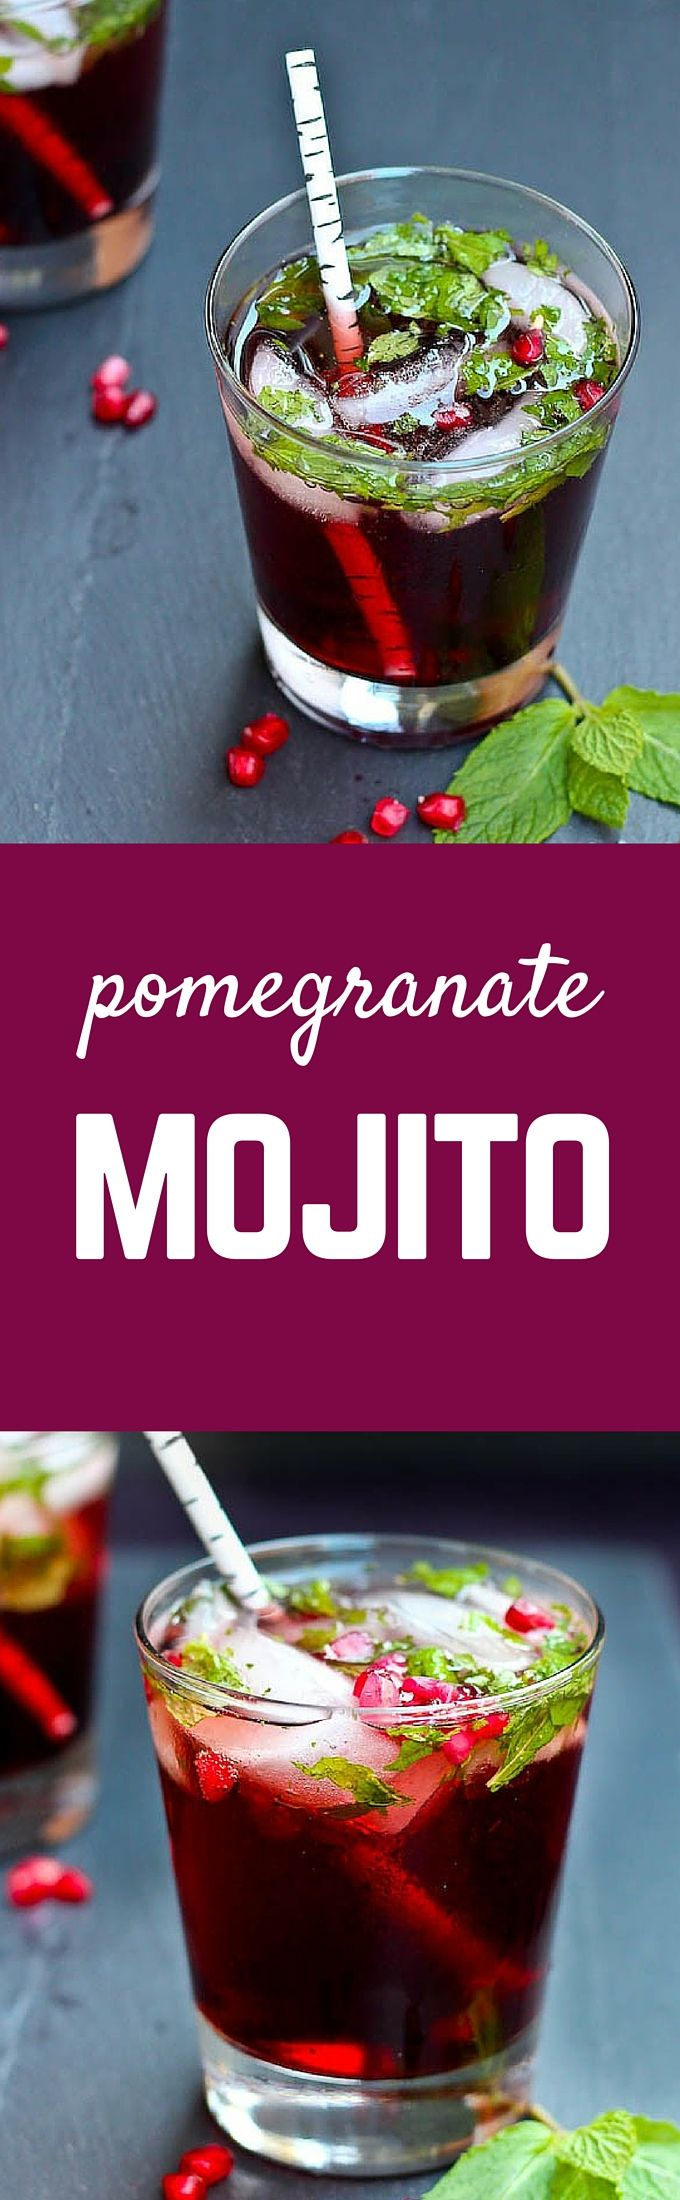 This pomegranate mojito is festive enough for the holidays but delicious enough to drink all year long! Get the fun cocktail recipe on RachelCooks.com! #sponsored #InTheRaw